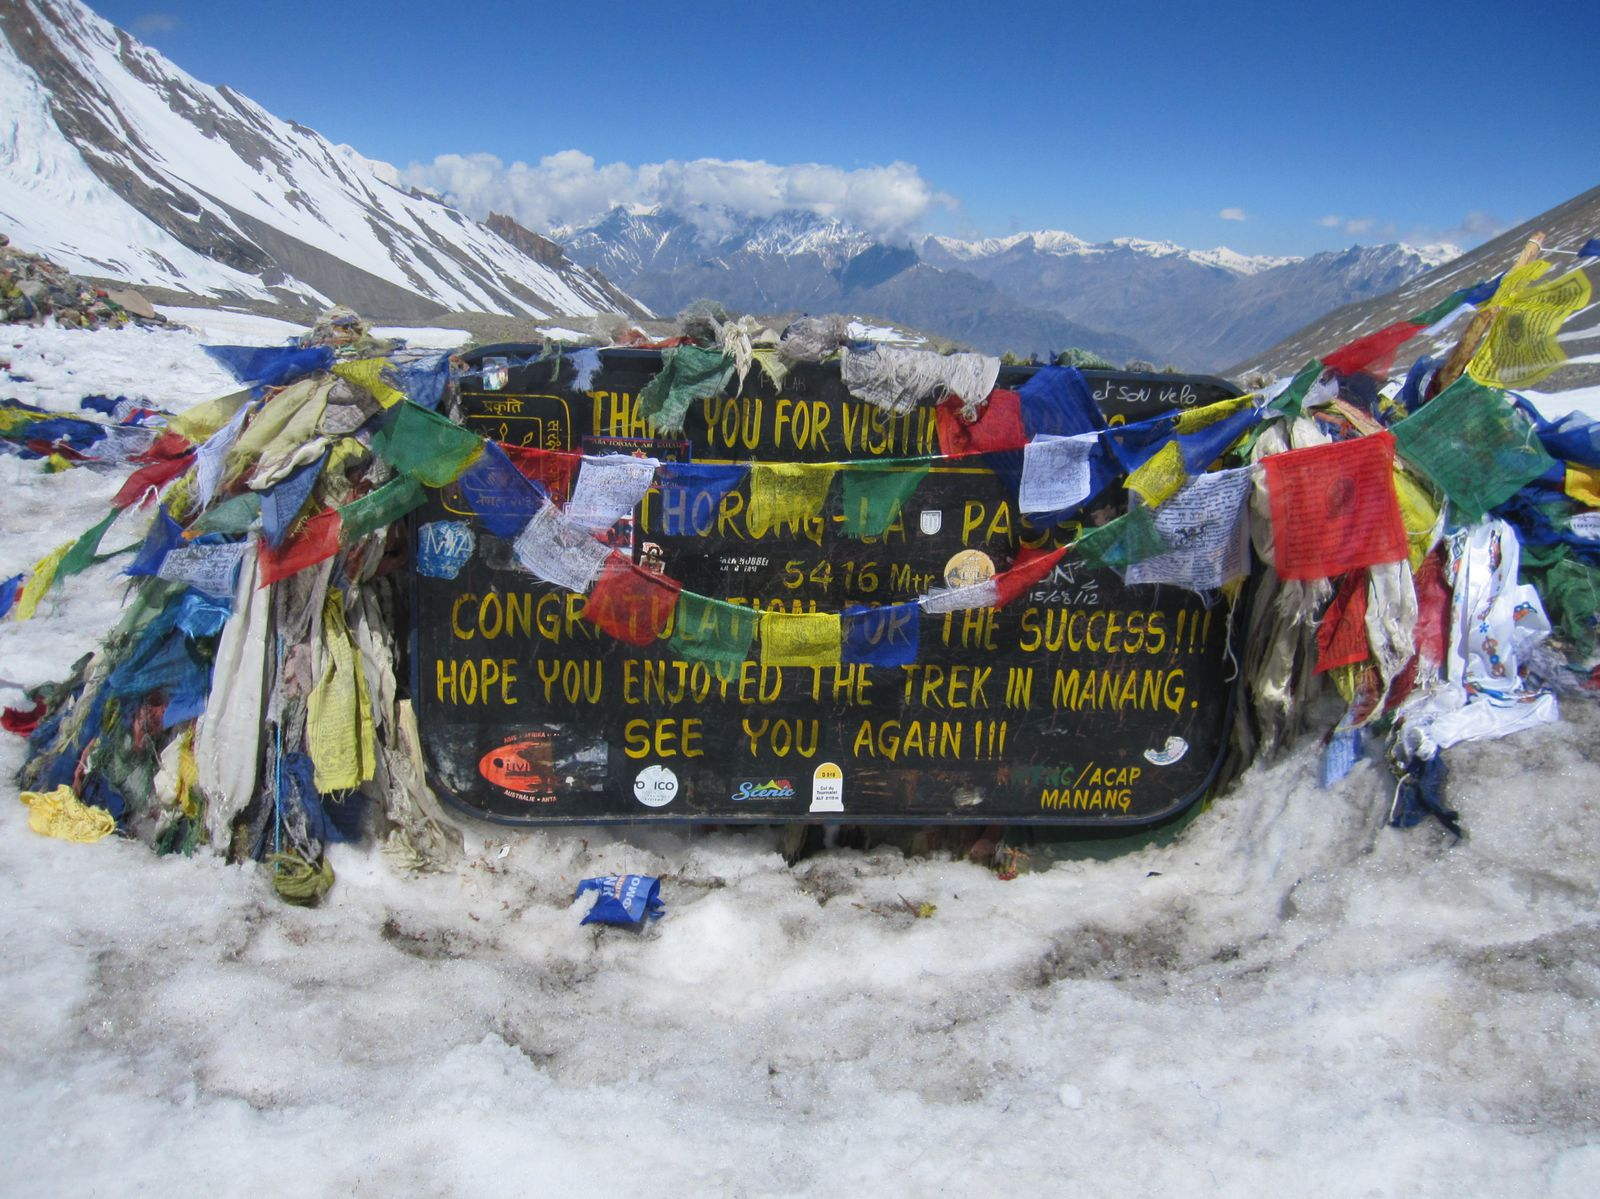 Thorung la Pass - 5416m